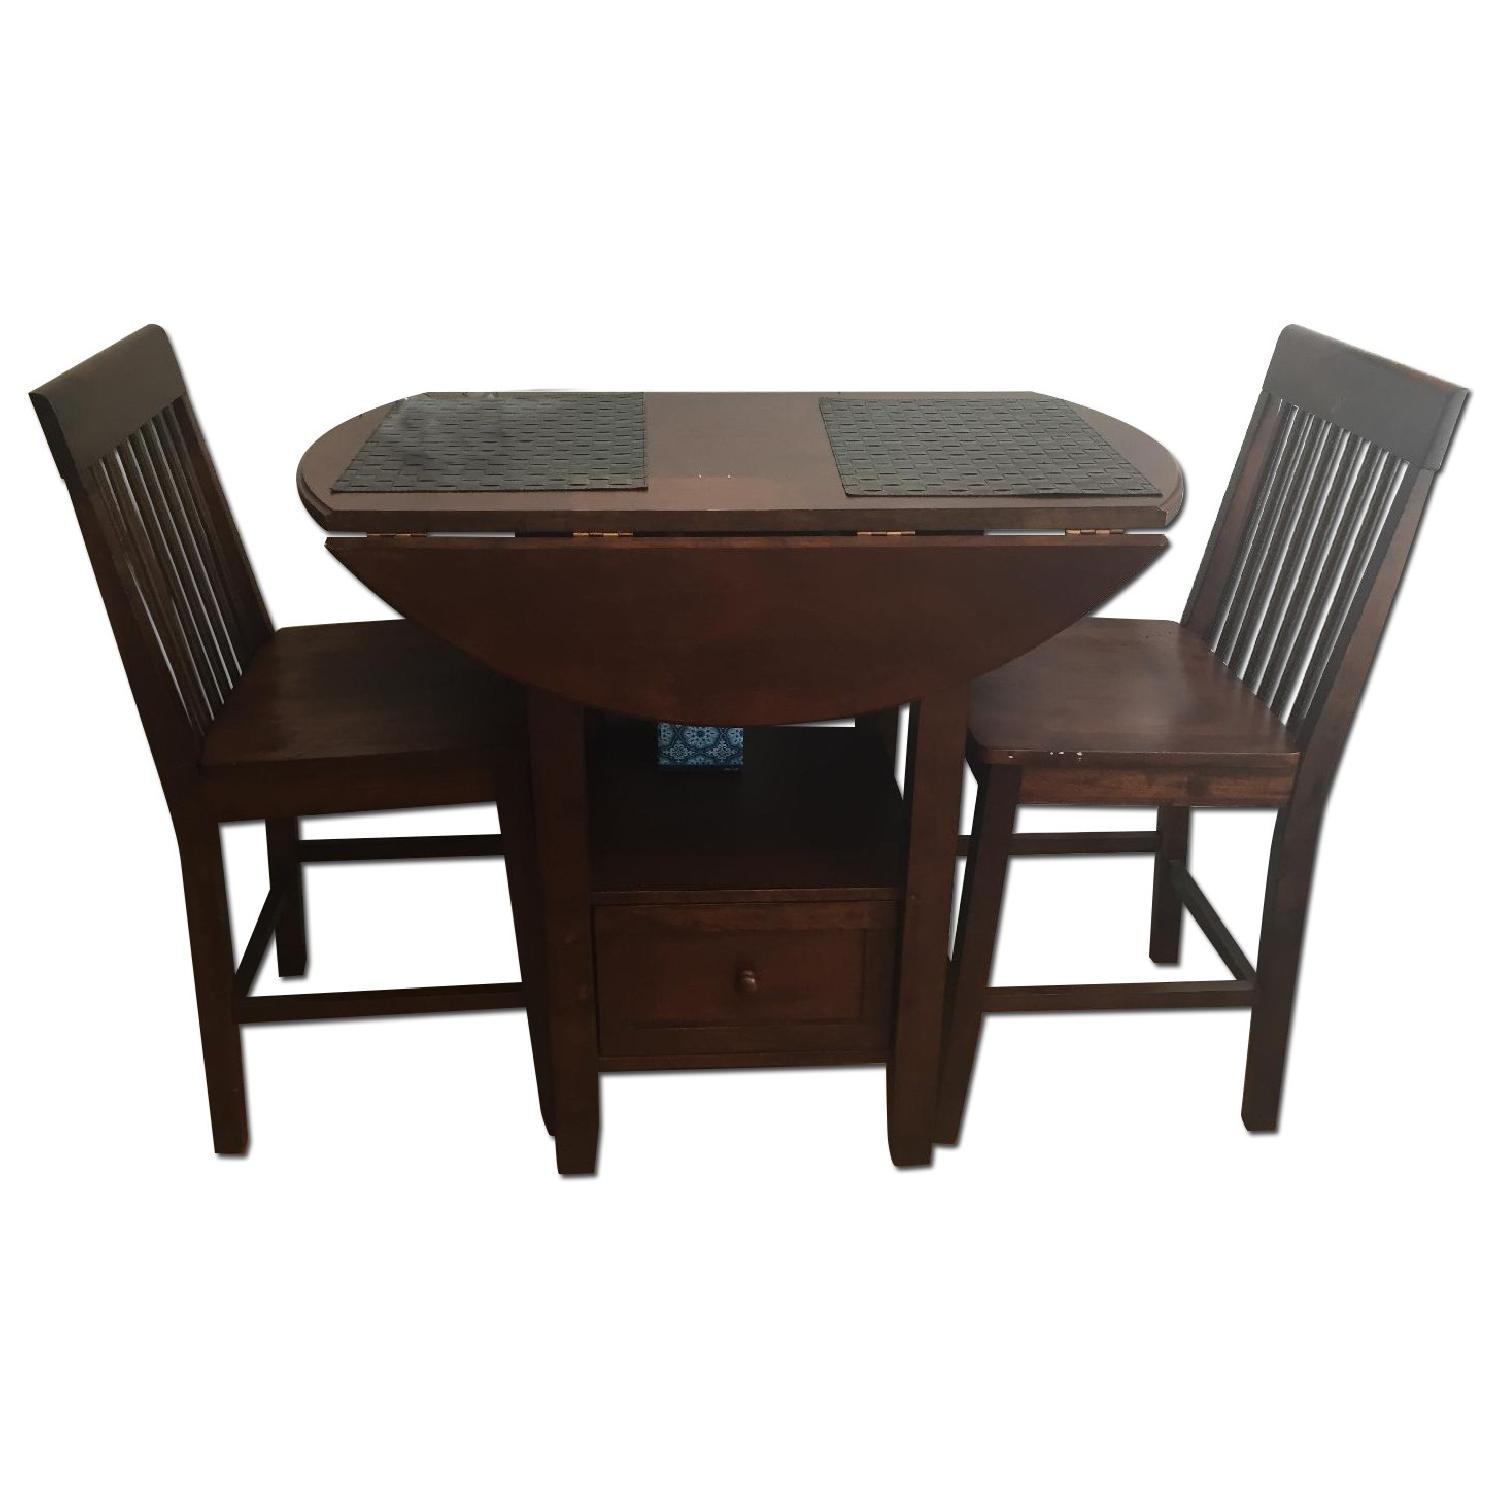 Threshold Wood High Top Table w/ 2 Chairs - image-0